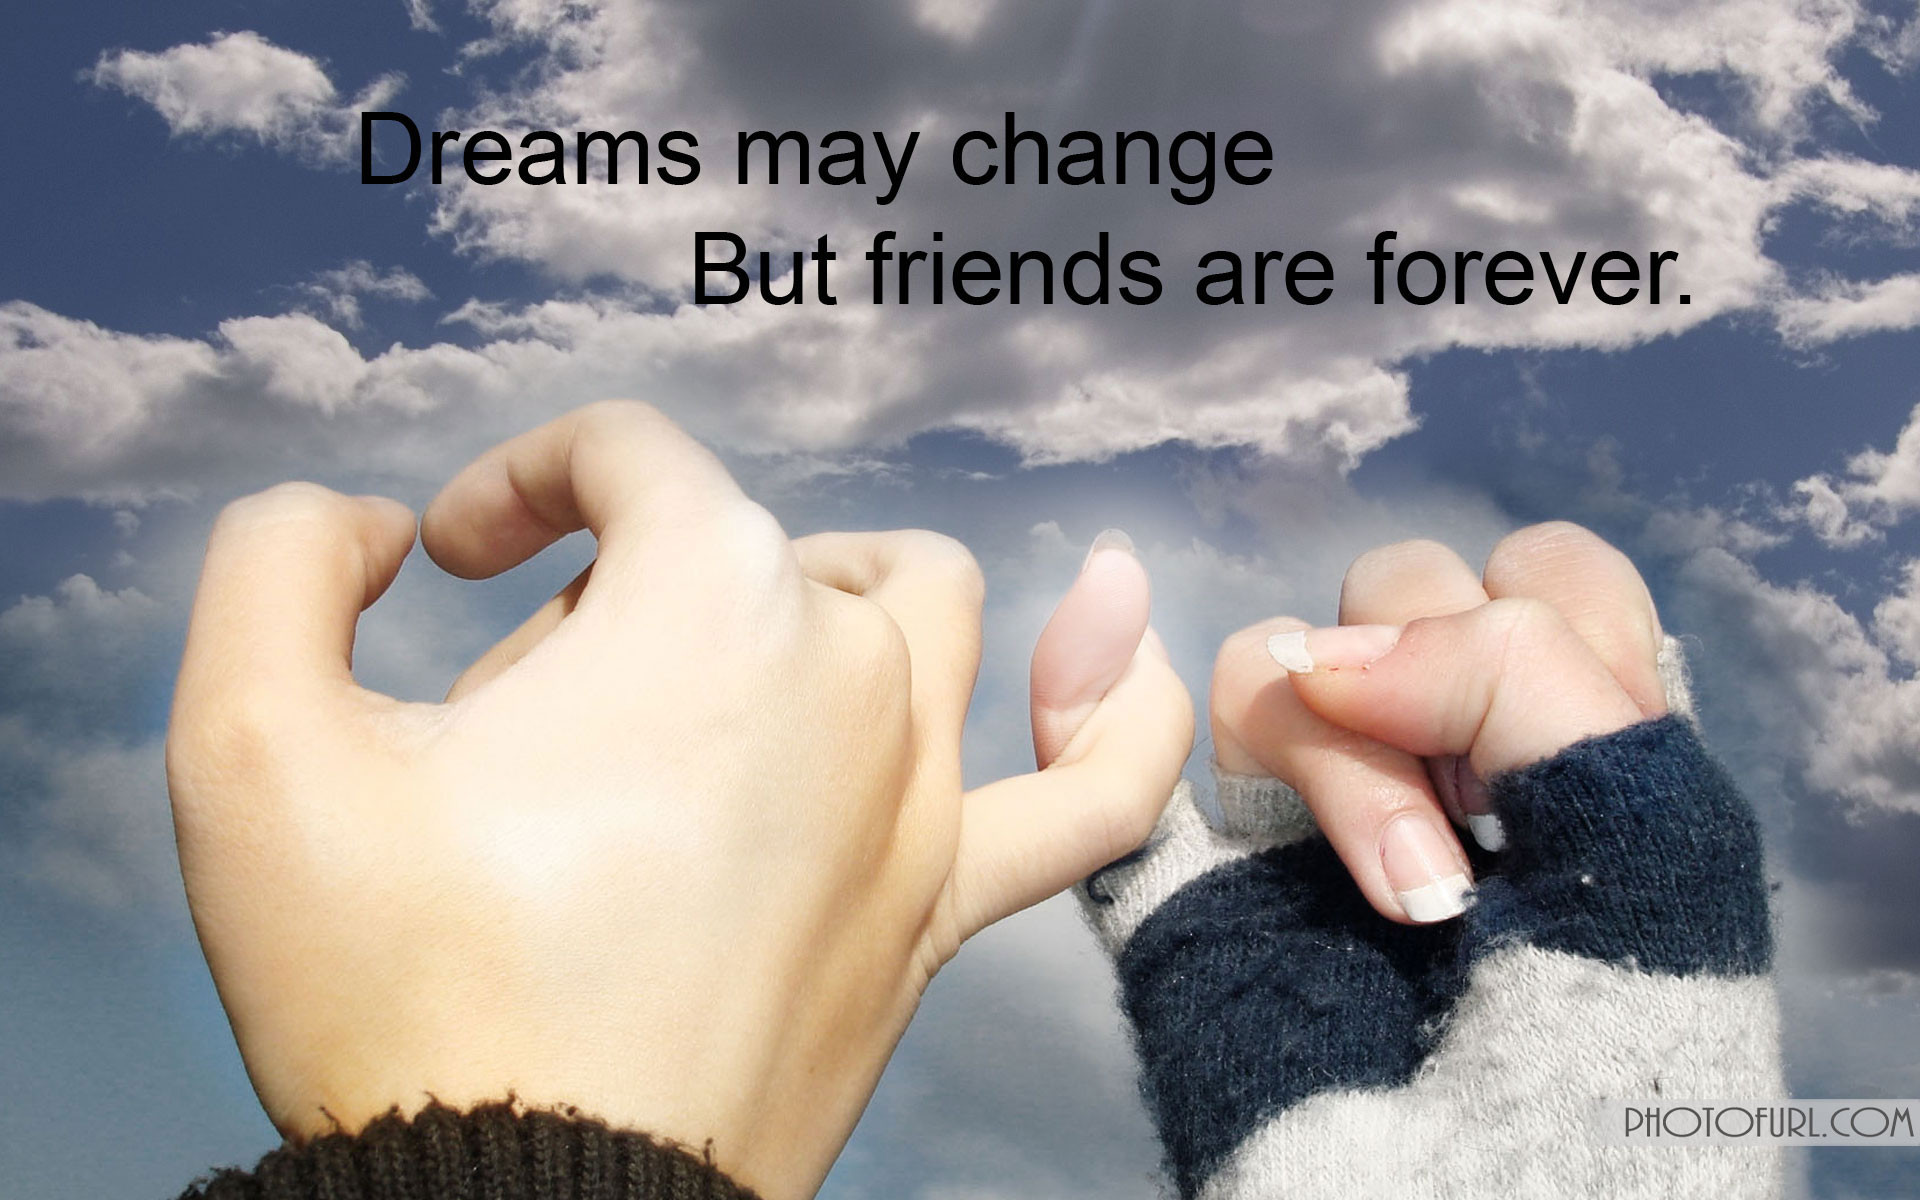 Friendship Pics With Quotes  Friendship Wallpapers With Quotes